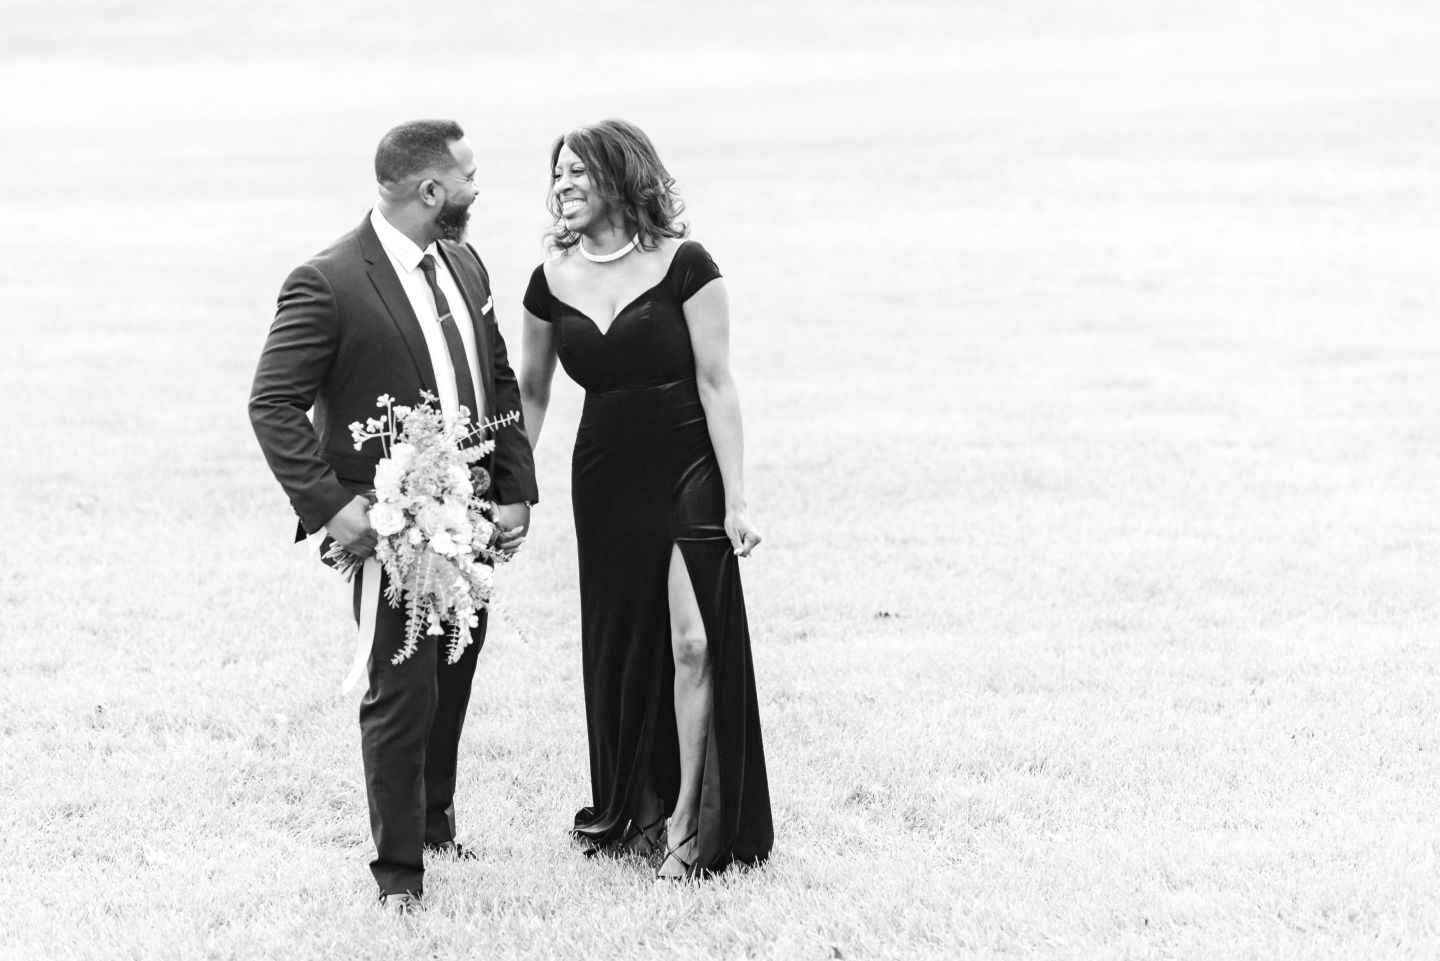 gaines2018-189-1440x961 Southern Black Love: 25 Anniversary Shoot with the Gaines Family